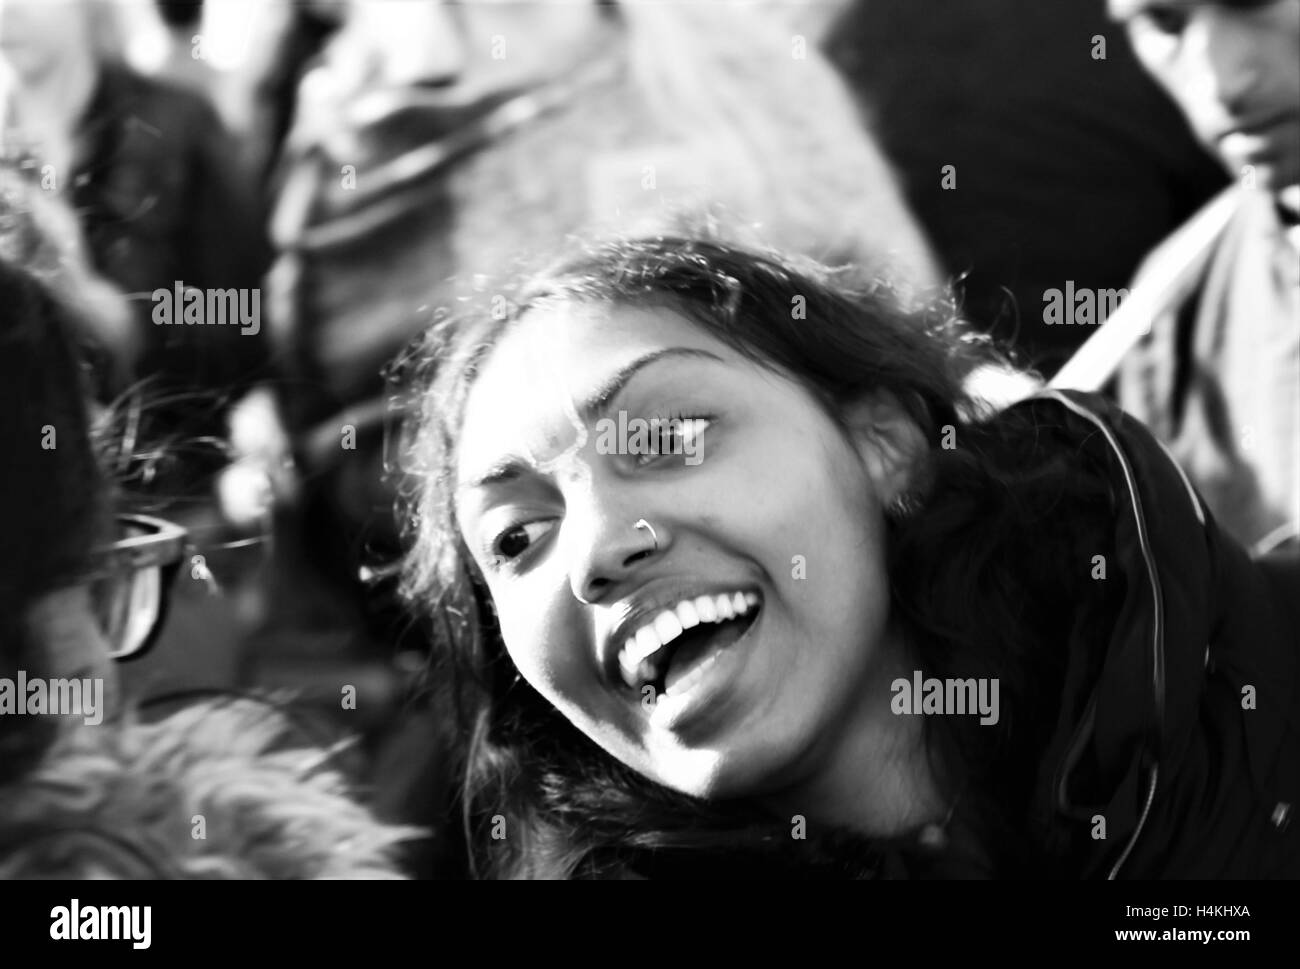 London, UK. 16th October, 2016. The Mayor of London Festival Of Dewali performers and scenes at Trafalgar Square - Stock Image